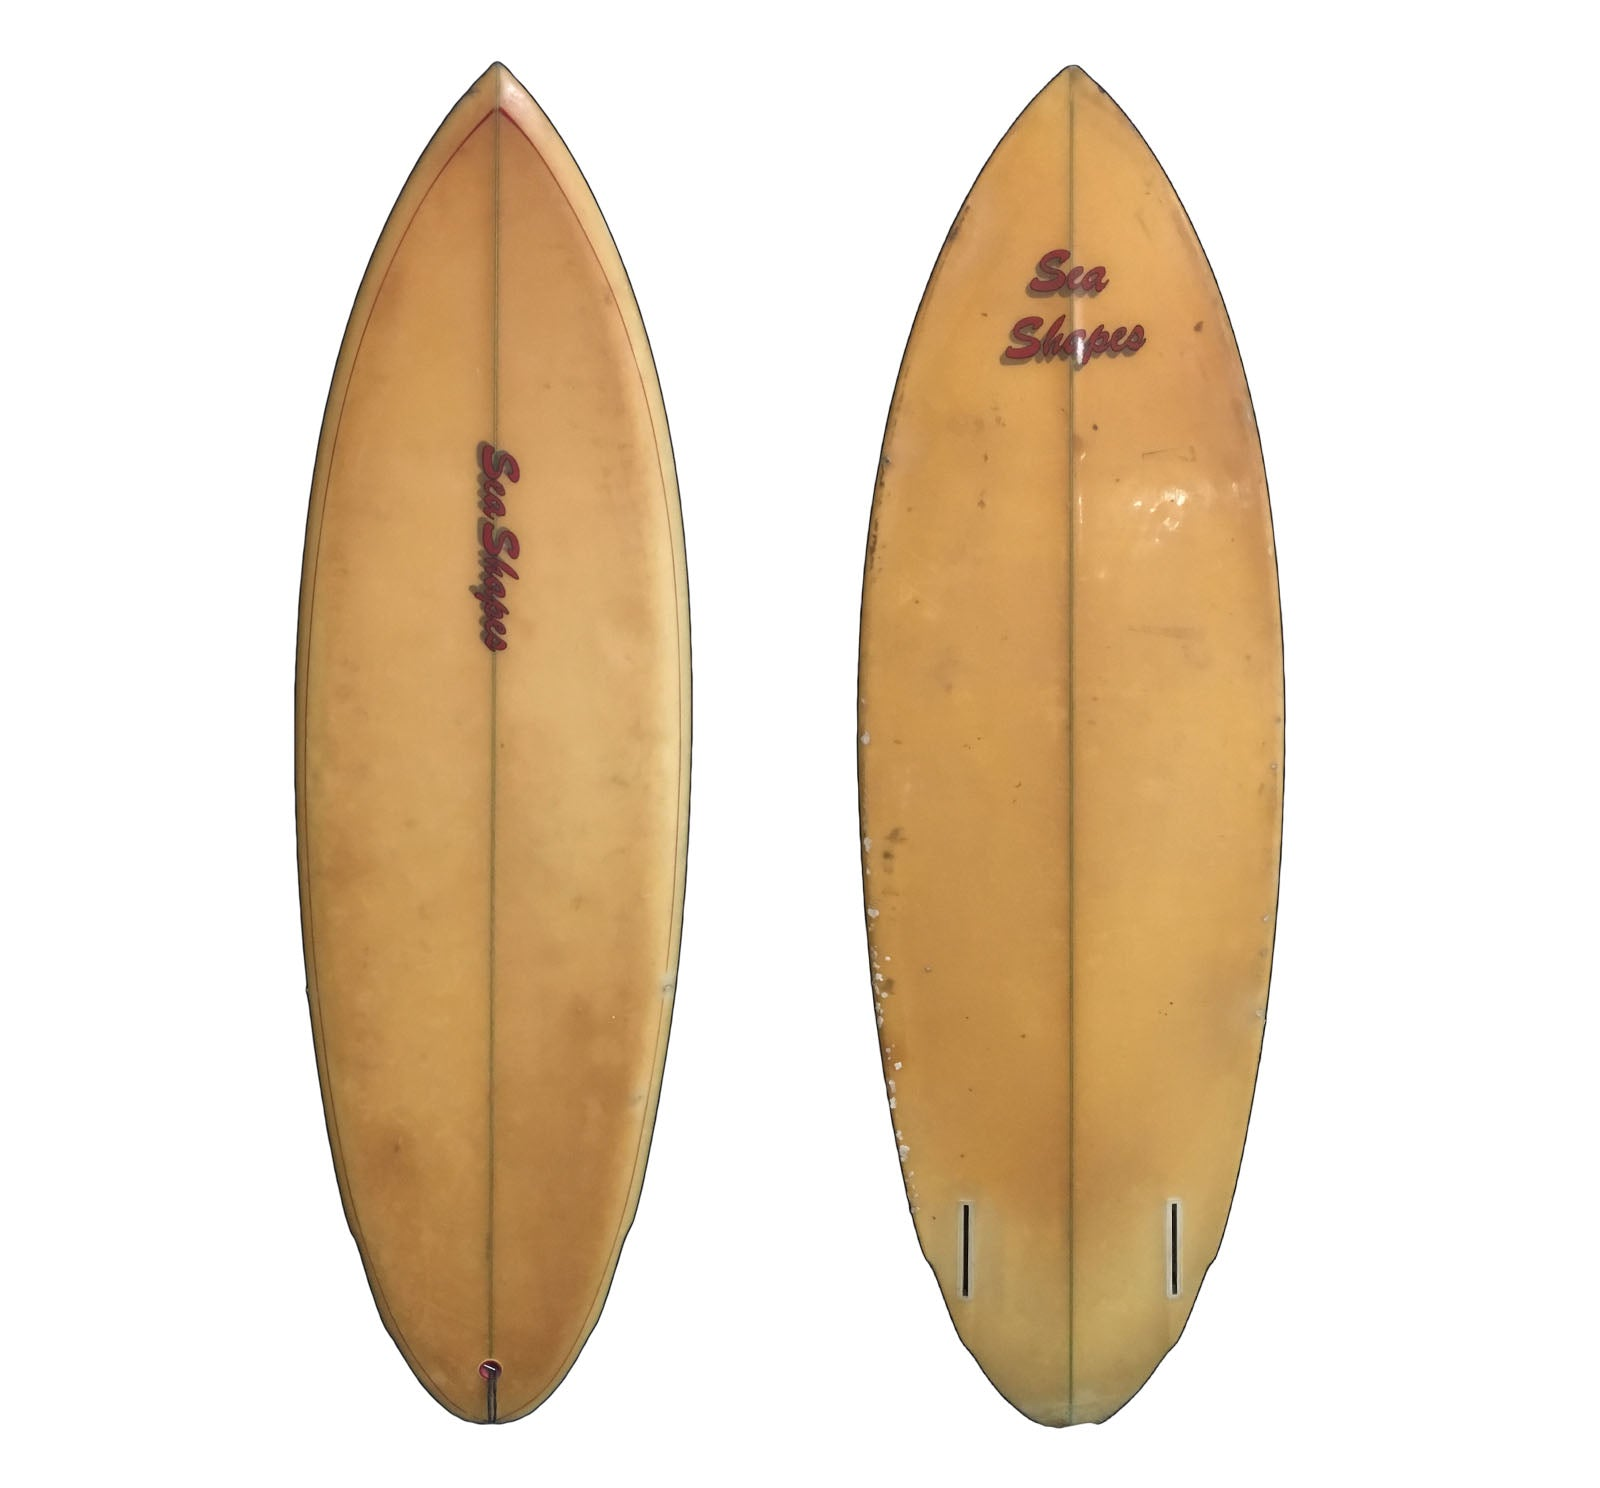 Sea Shapes 5'11 Collector Surfboard